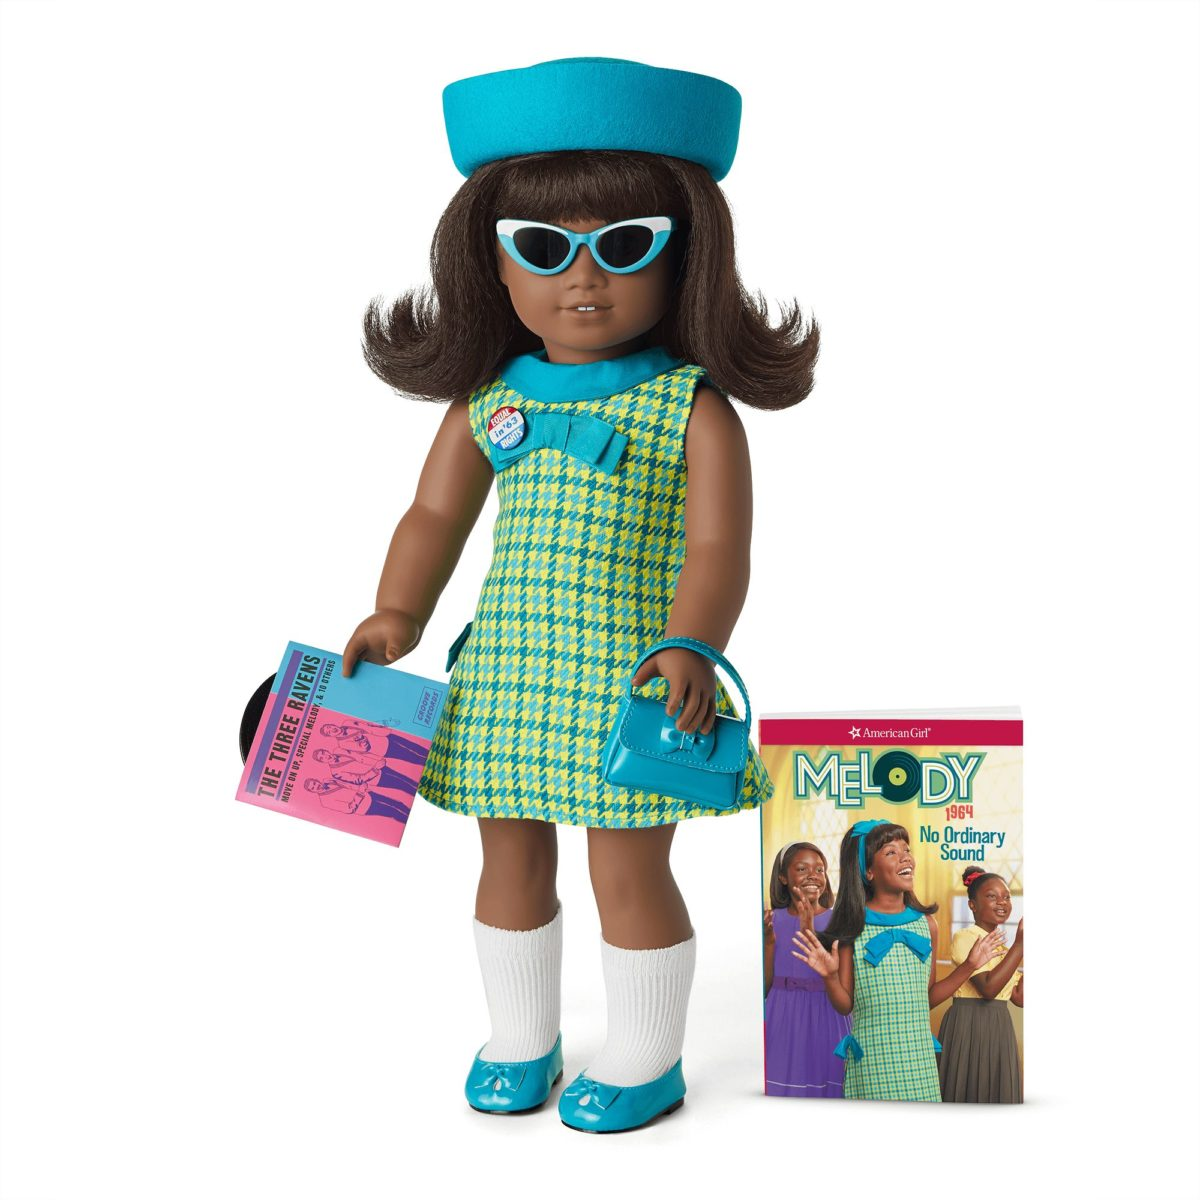 must-haves for parents to help keep their kids busy, entertained, and having fun at home | parenting questions | mamas uncut 02bun24 melody doll book and accessories 01